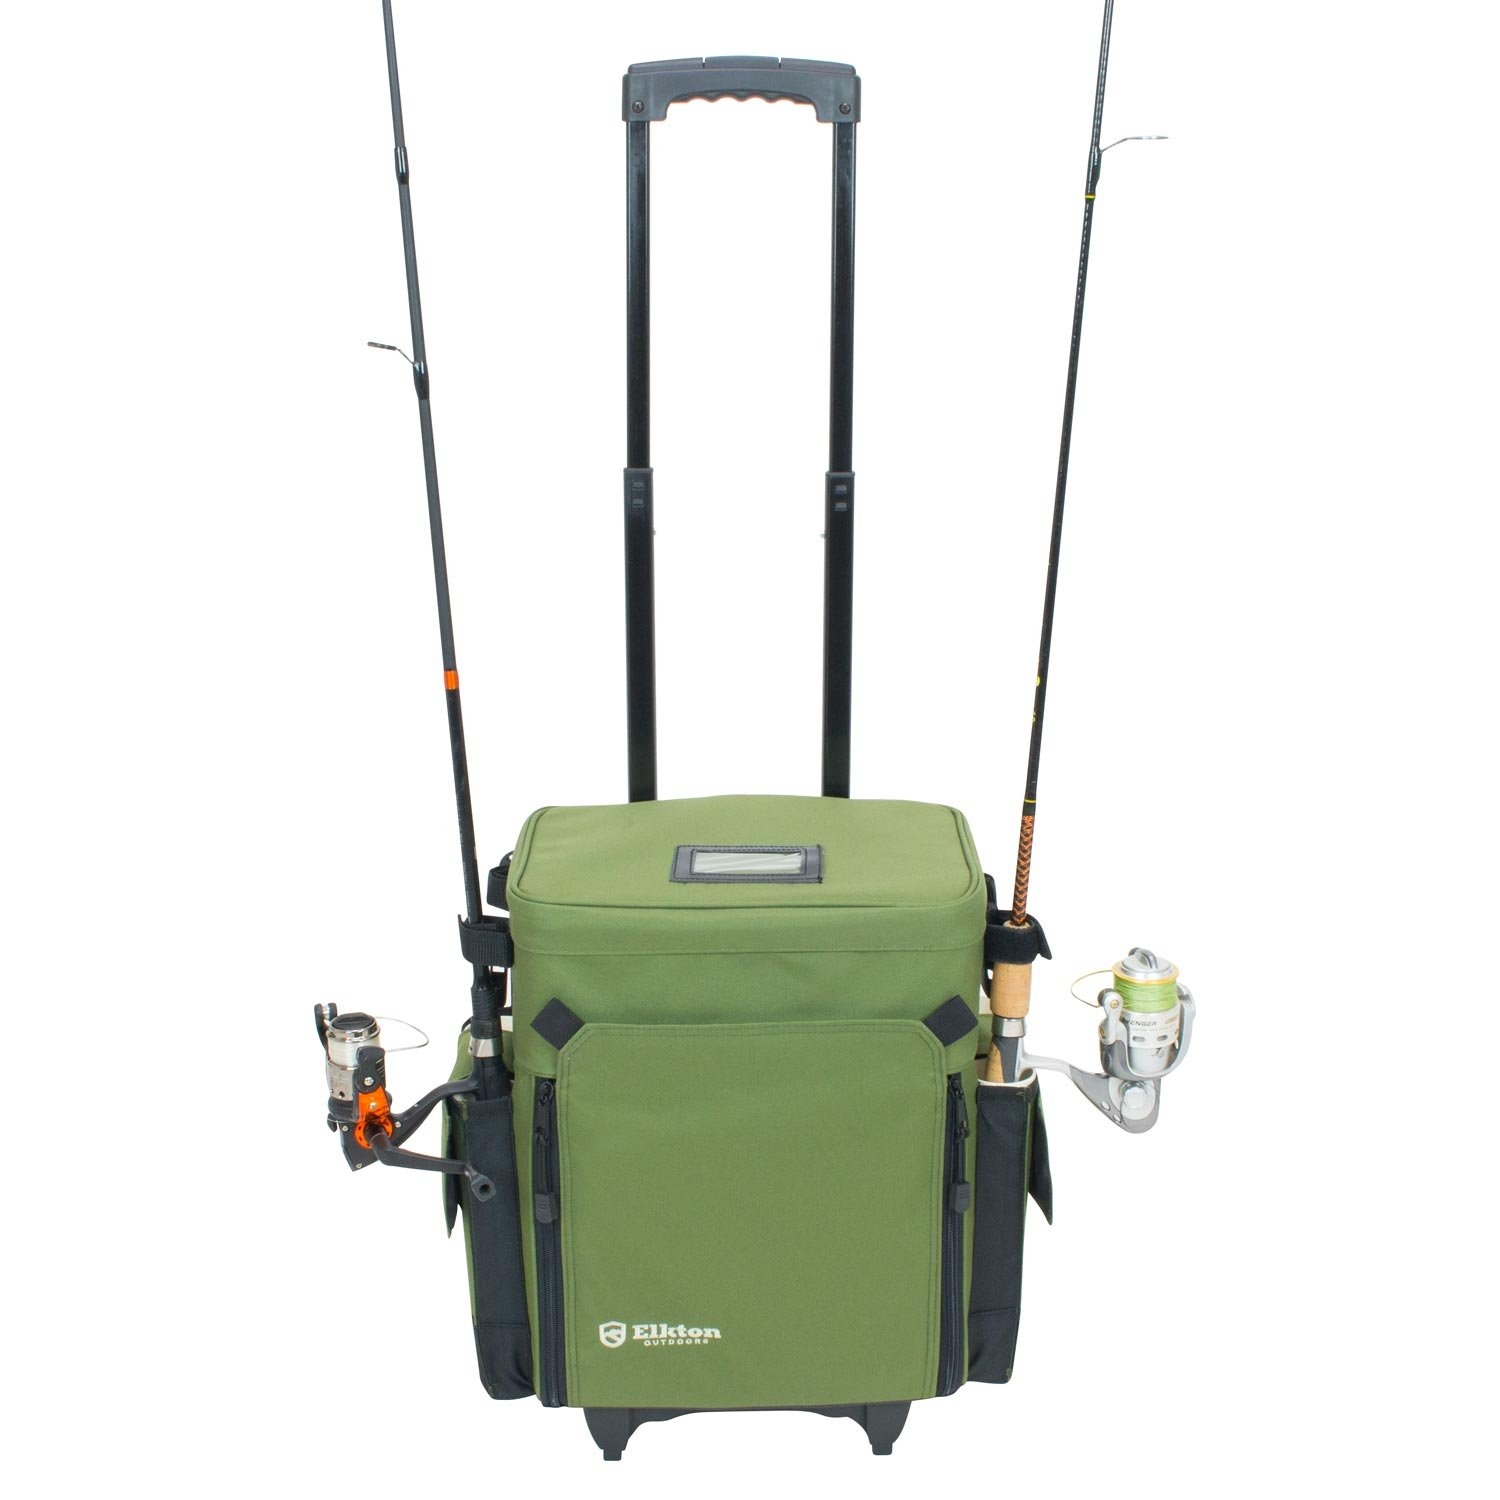 Elkton Outdoors Rolling Tackle Box Green / L 15.7 x W 9.6 x H 18.5 inches / 11 pounds / Waterproof / 5 Retractable Compartments / 4 Rod Holders / Rolling Fishing Tackle Bag / Roller Tackle Box